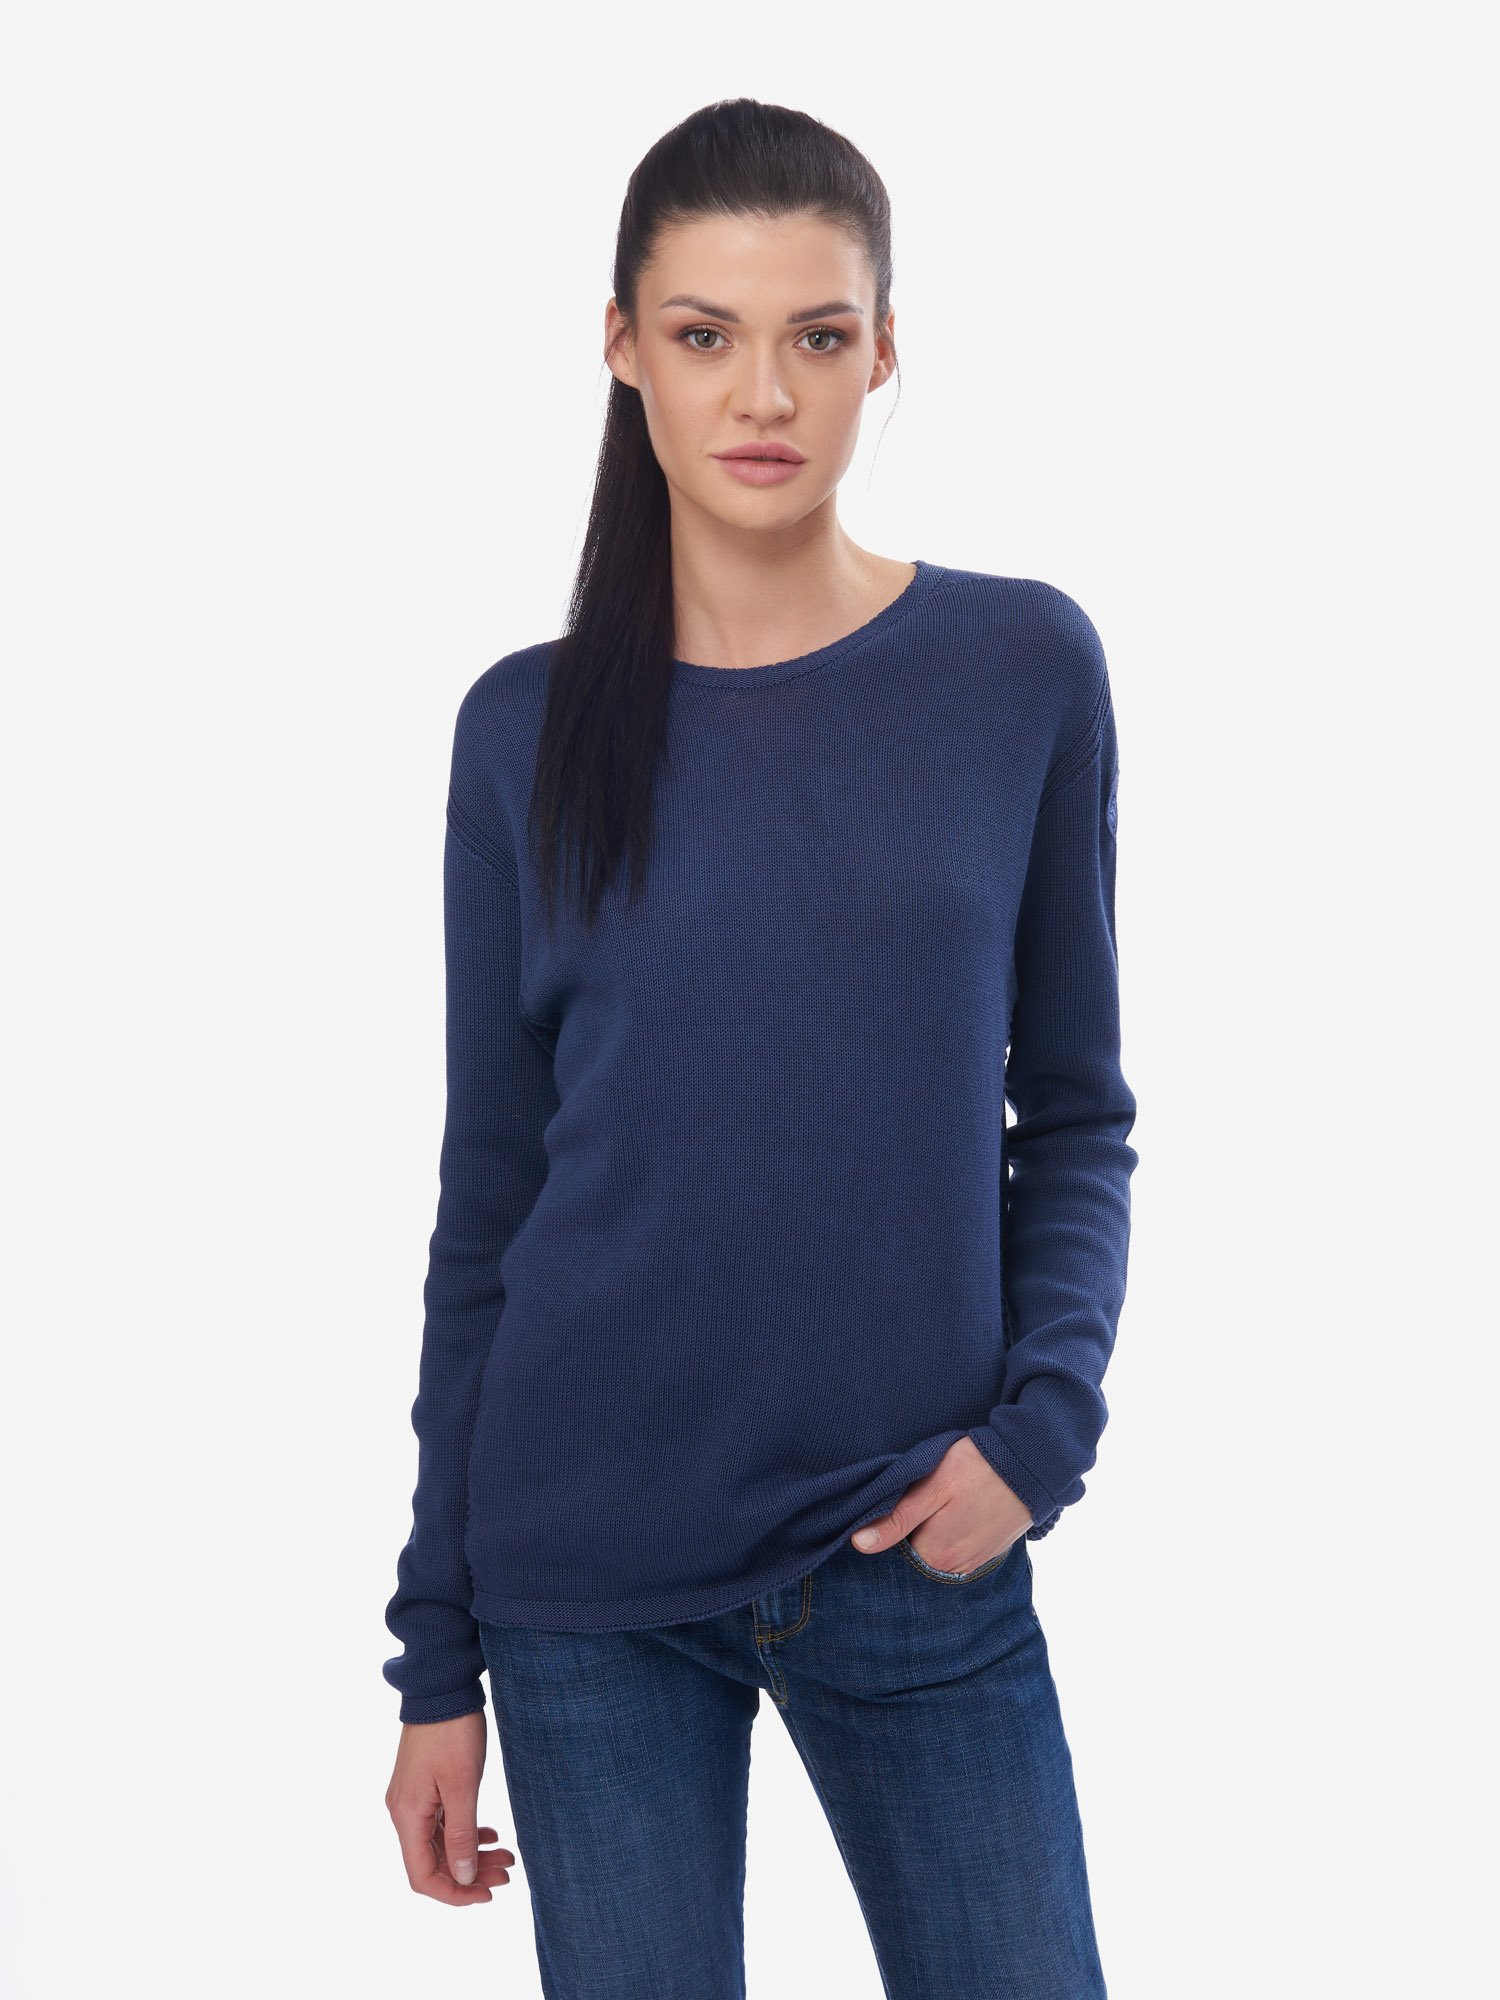 SWEATER WITH MESH DETAILS - Blauer